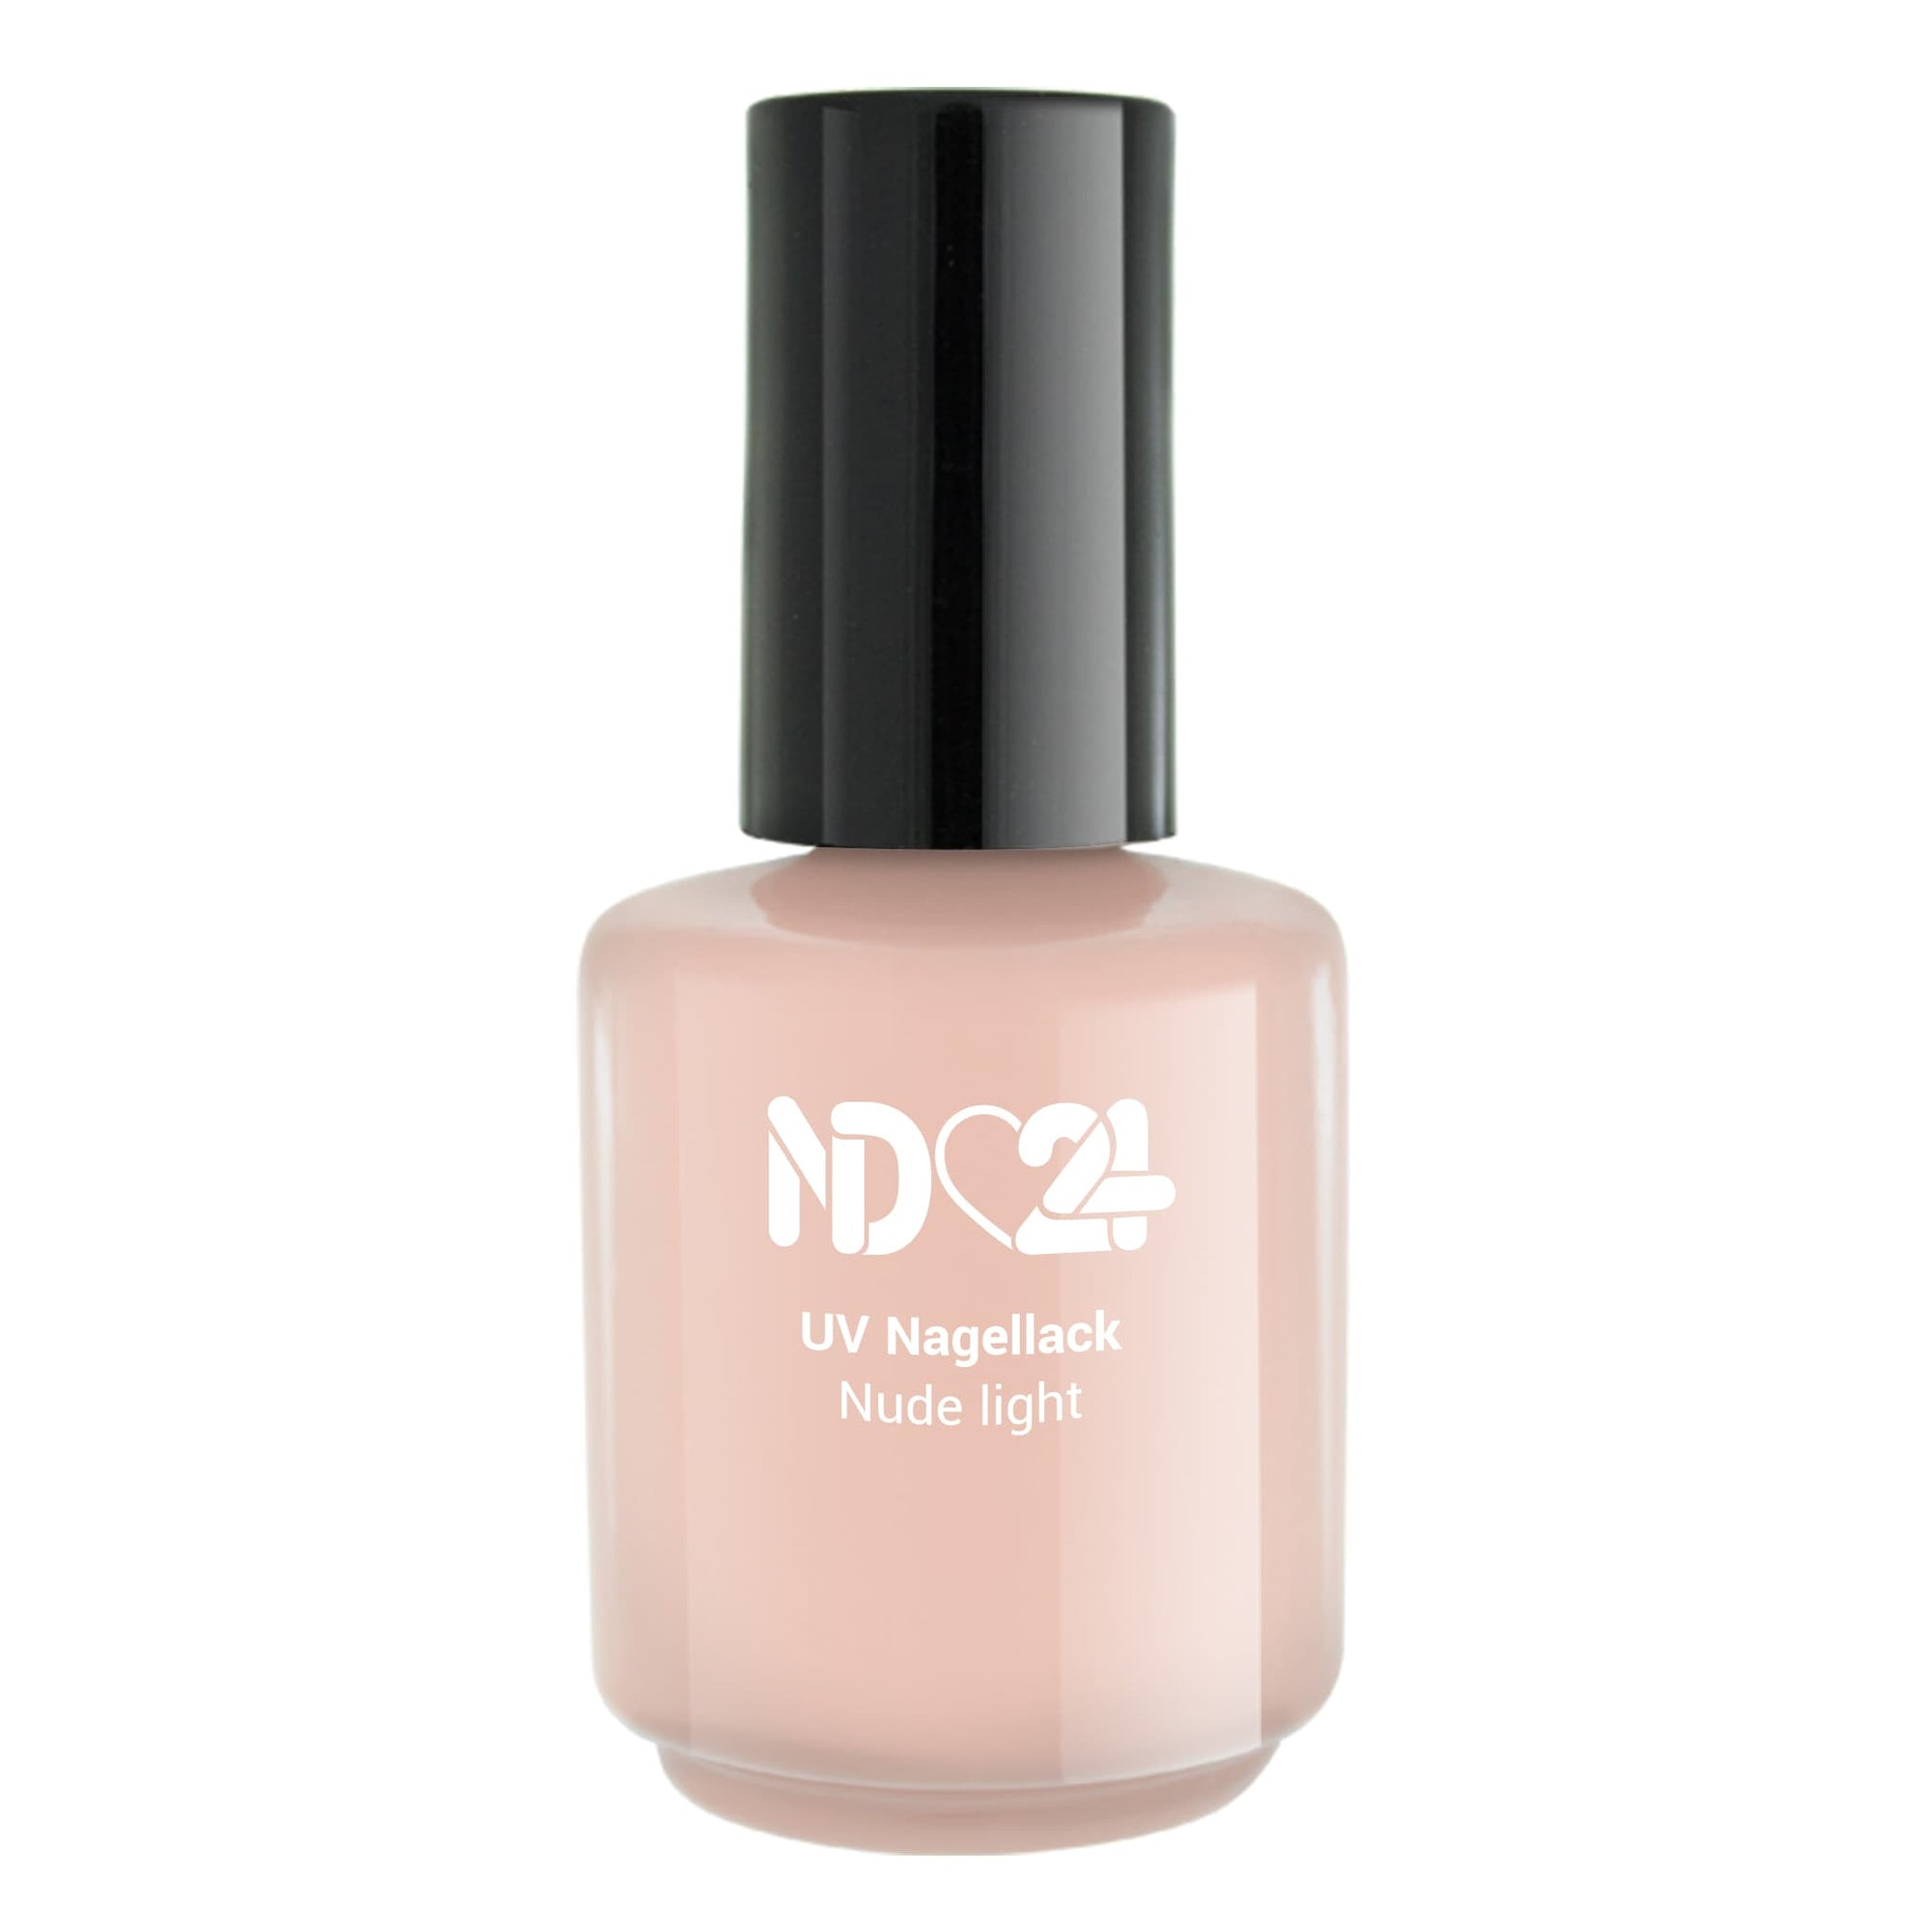 UV Nagellack Nude light